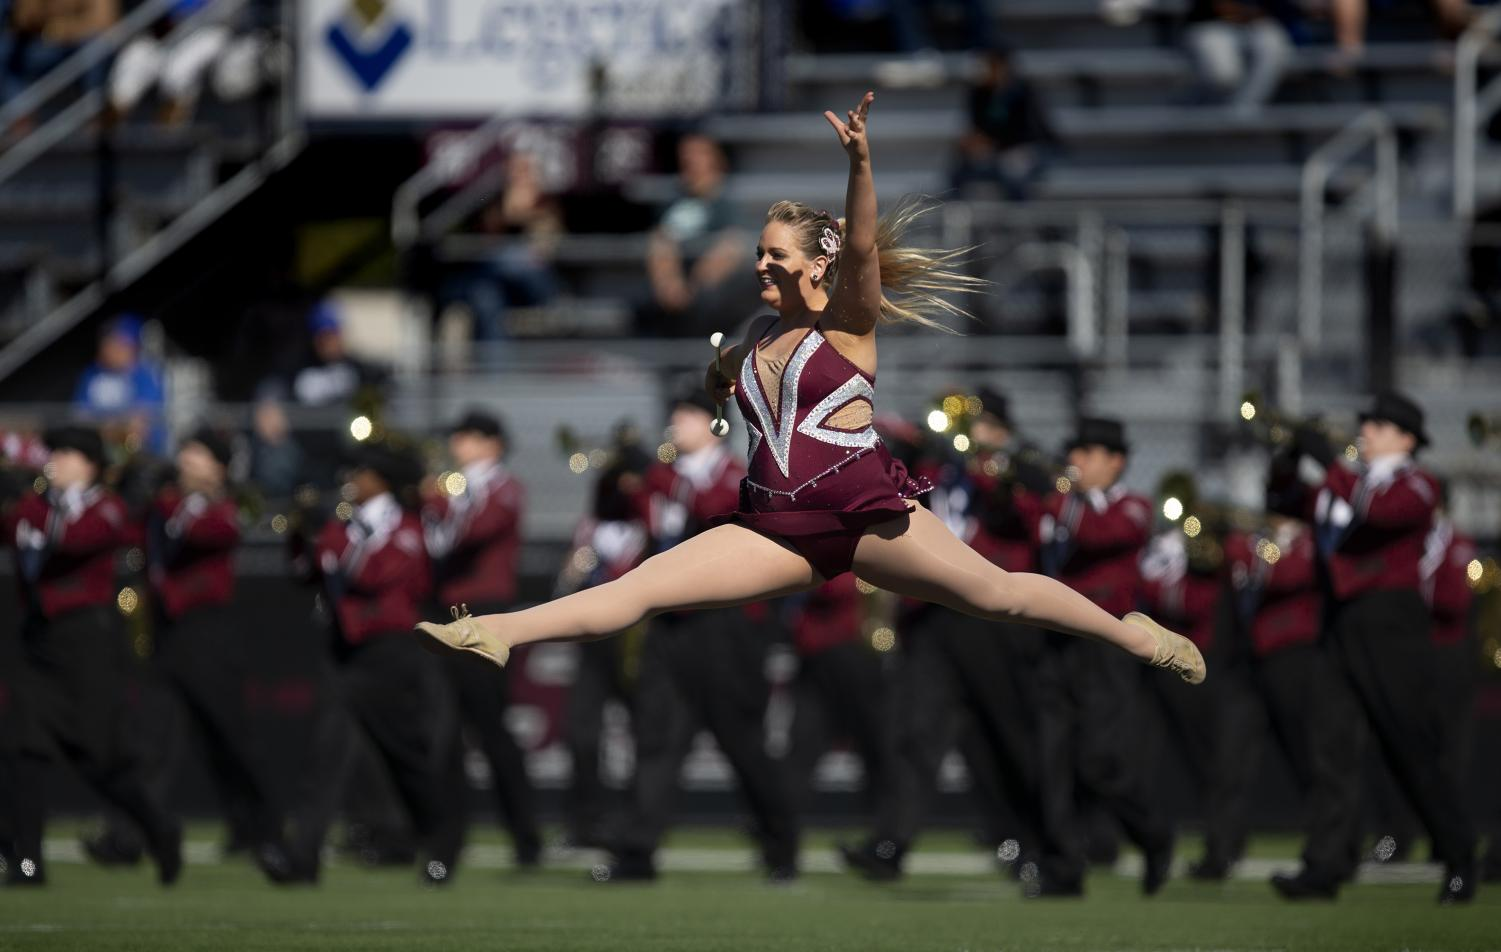 Jazmin+Randazzo%2C+a+junior+studying+biological+sciences%2C+leaps+during+halftime+of+the+Salukis%27+24-21+loss+against+the+Indiana+State+Sycamores+at+Saluki+Stadium%2C+Saturday%2C+Oct.+20%2C+2018.+%28Isabel+Miller+%7C+%40IsabelMillerDE%29